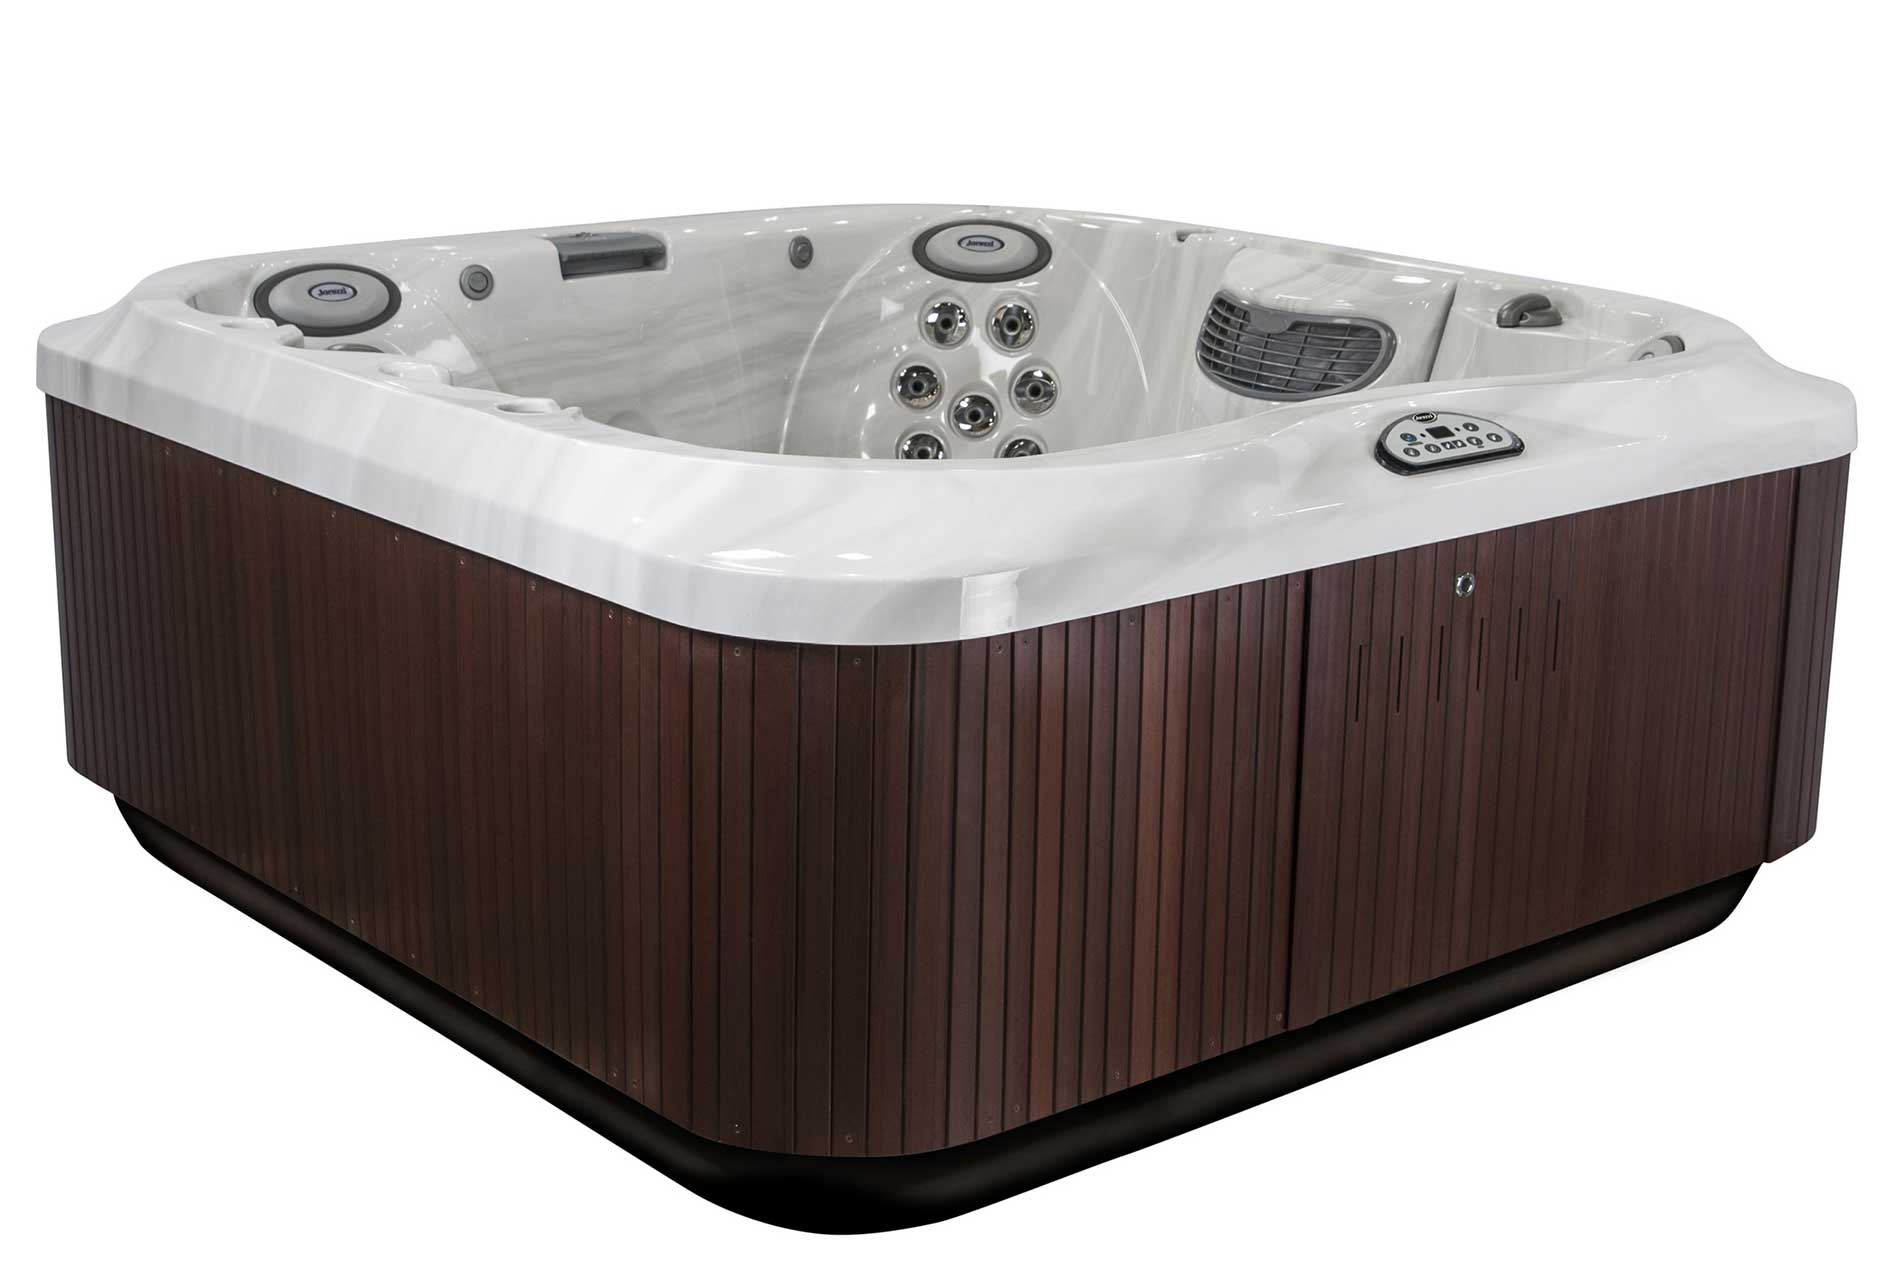 Jacuzzi Hot Tubs for Sale in New Hampshire